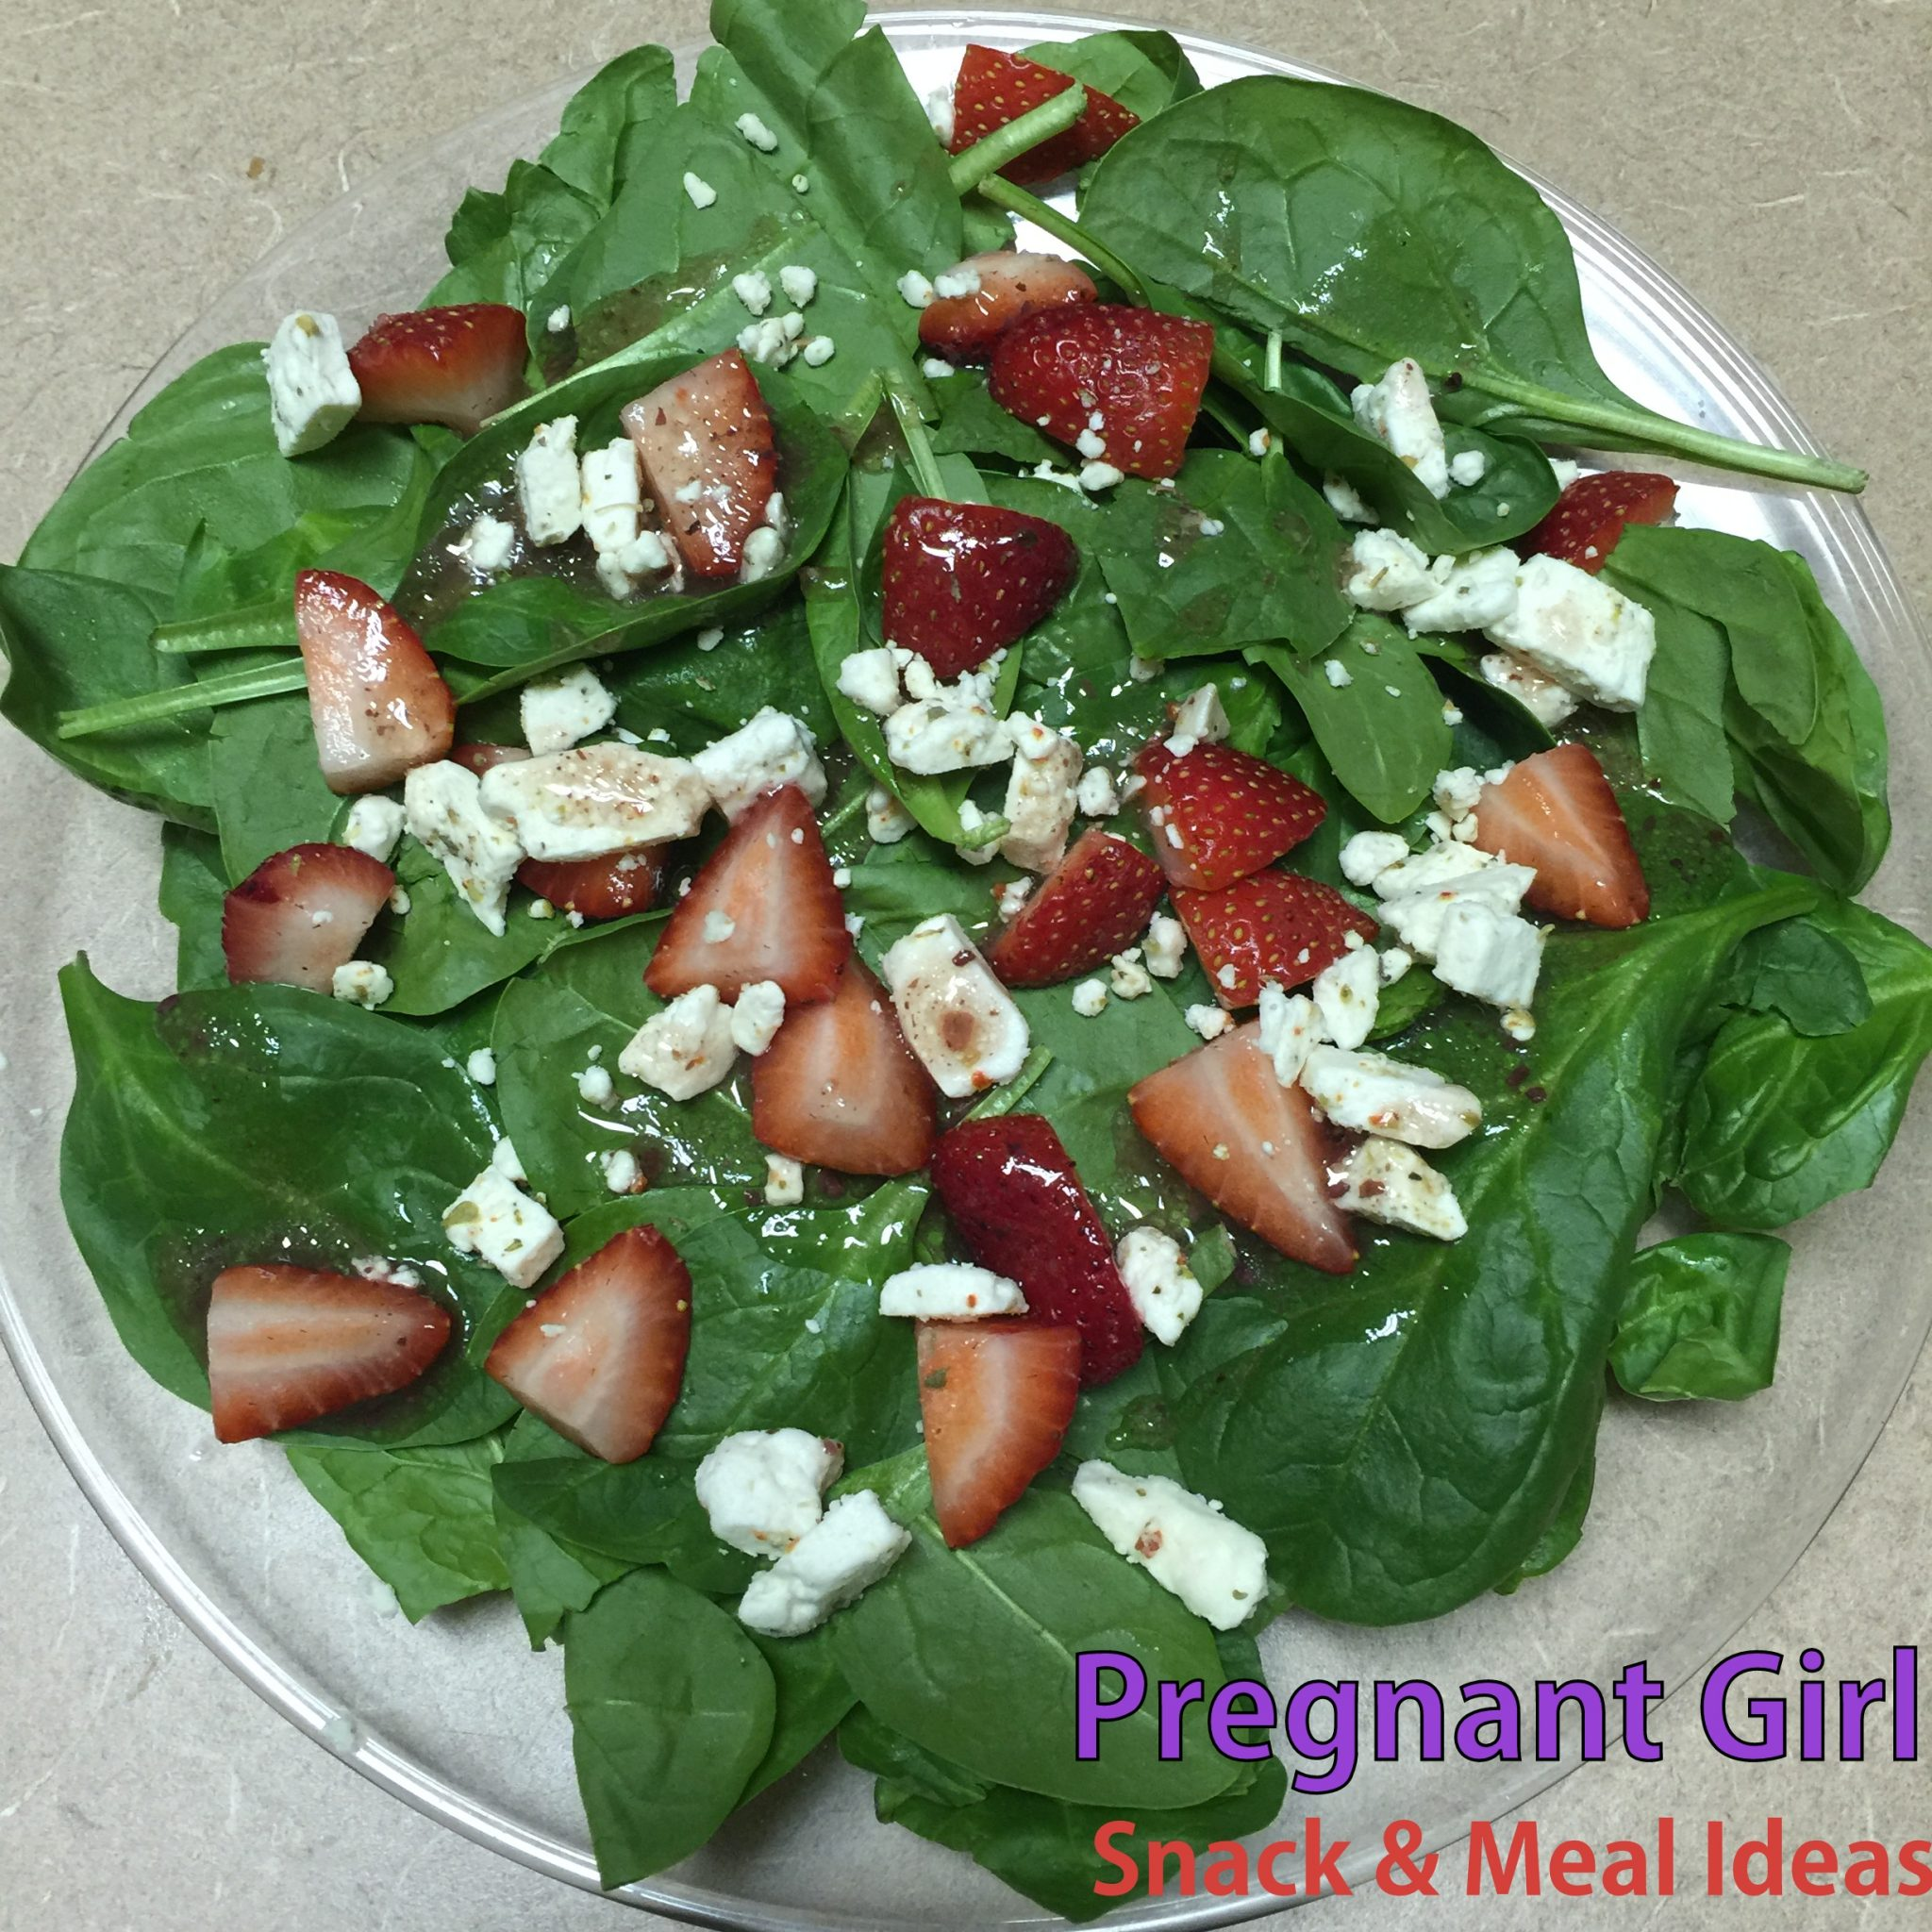 pregnant girl diet snack  meal ideas for fit pregnancy